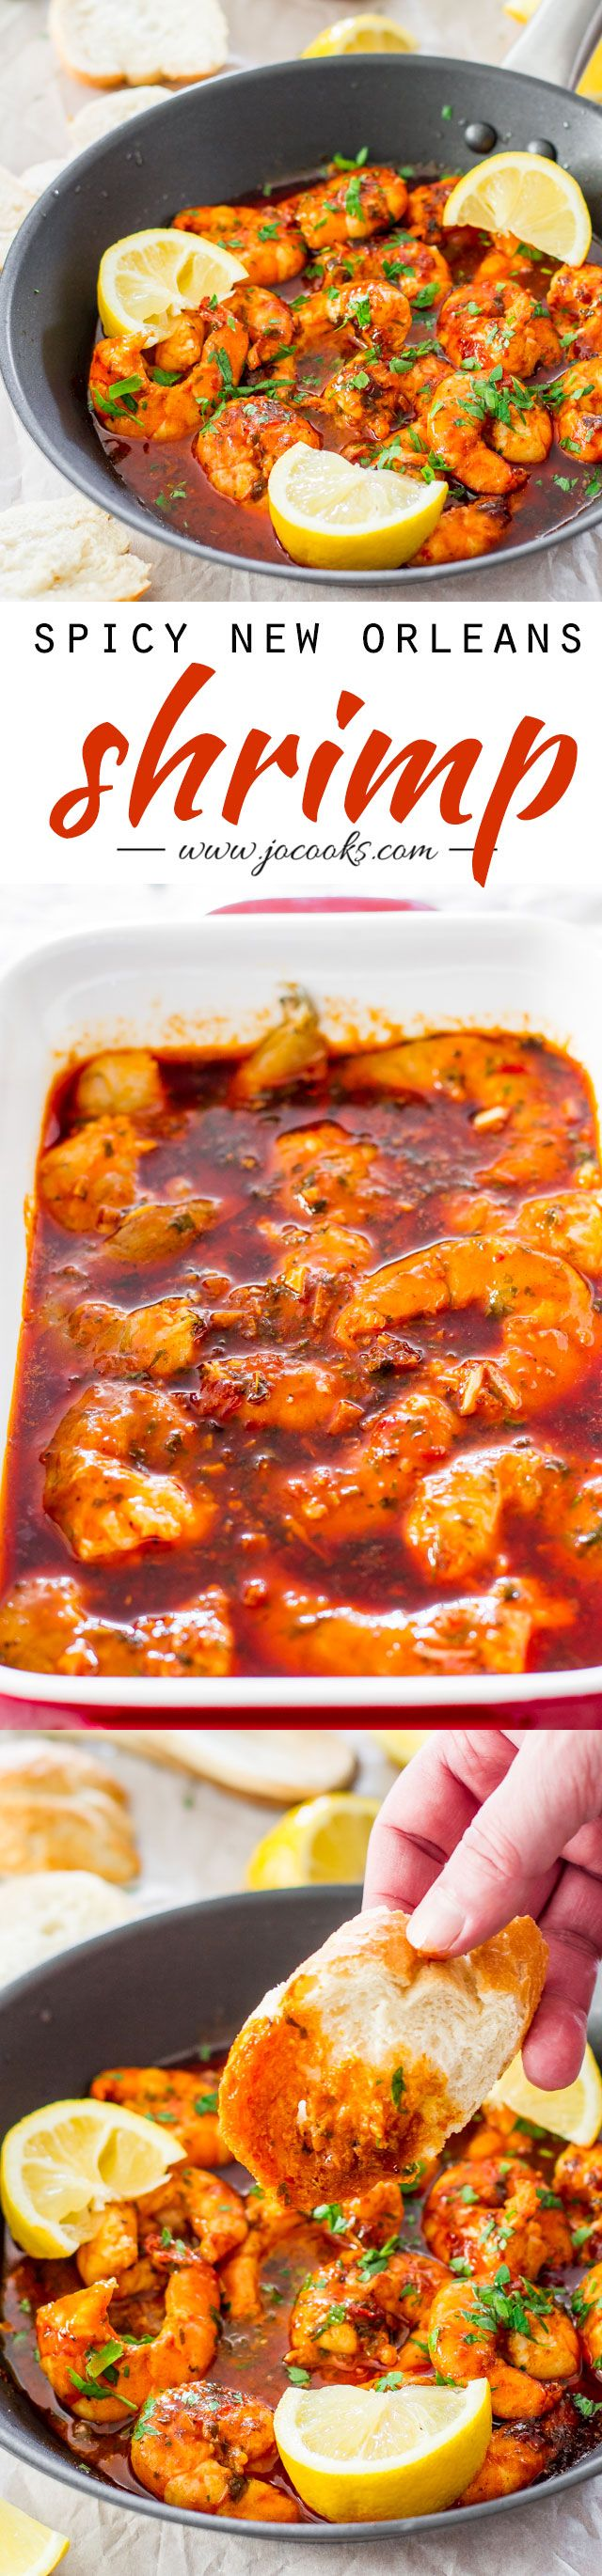 Spicy New Orleans Shrimp!  This looks delicious!